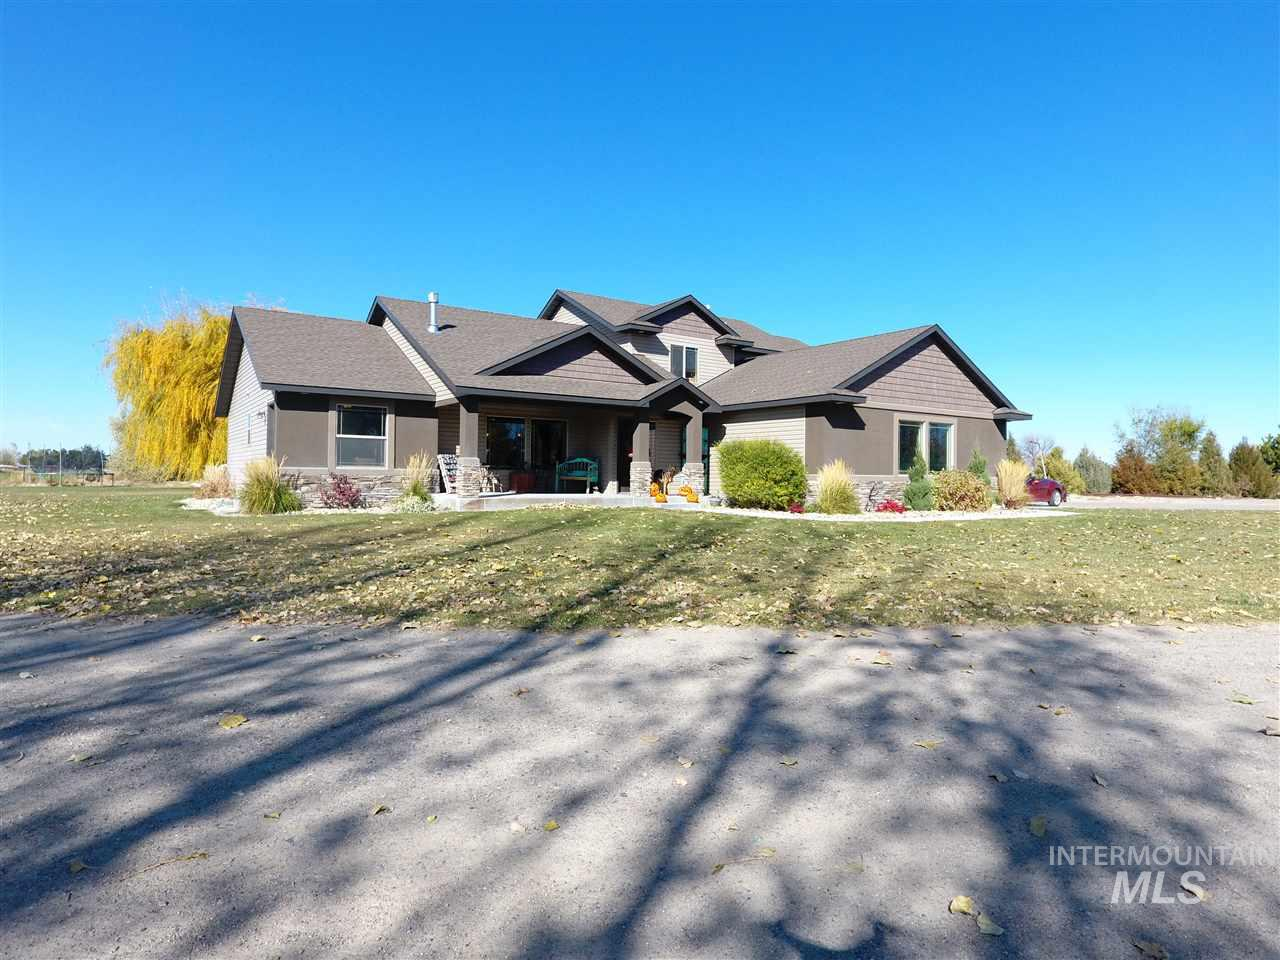 Single Family Home for Sale at 315 South 477 Ln West 315 South 477 Ln West Heyburn, Idaho 83336